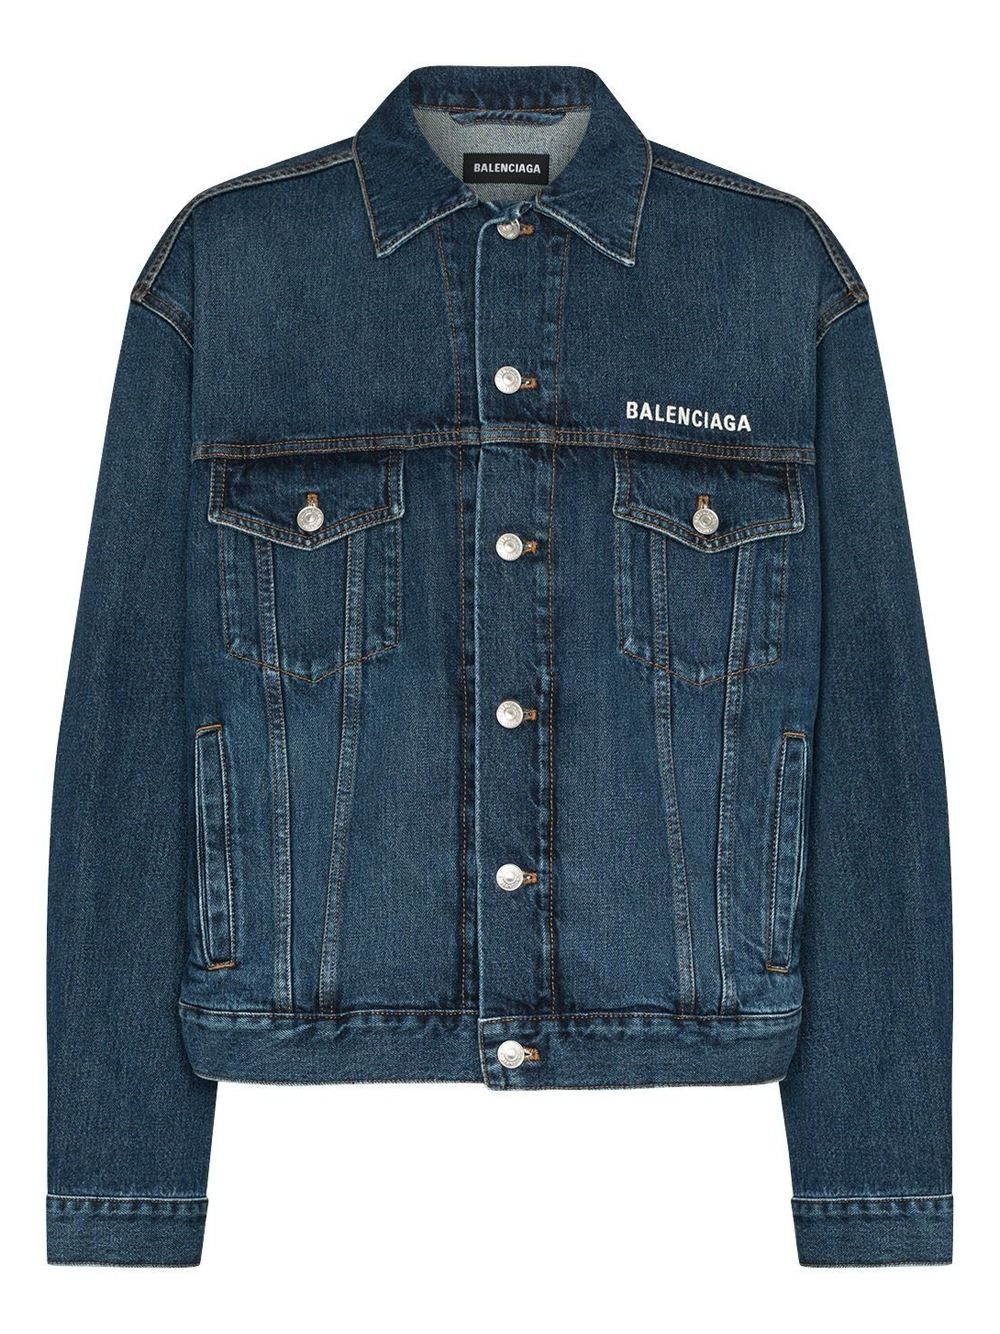 BALENCIAGA Embroidered Logo Denim Jacket Blue - Maison De Fashion